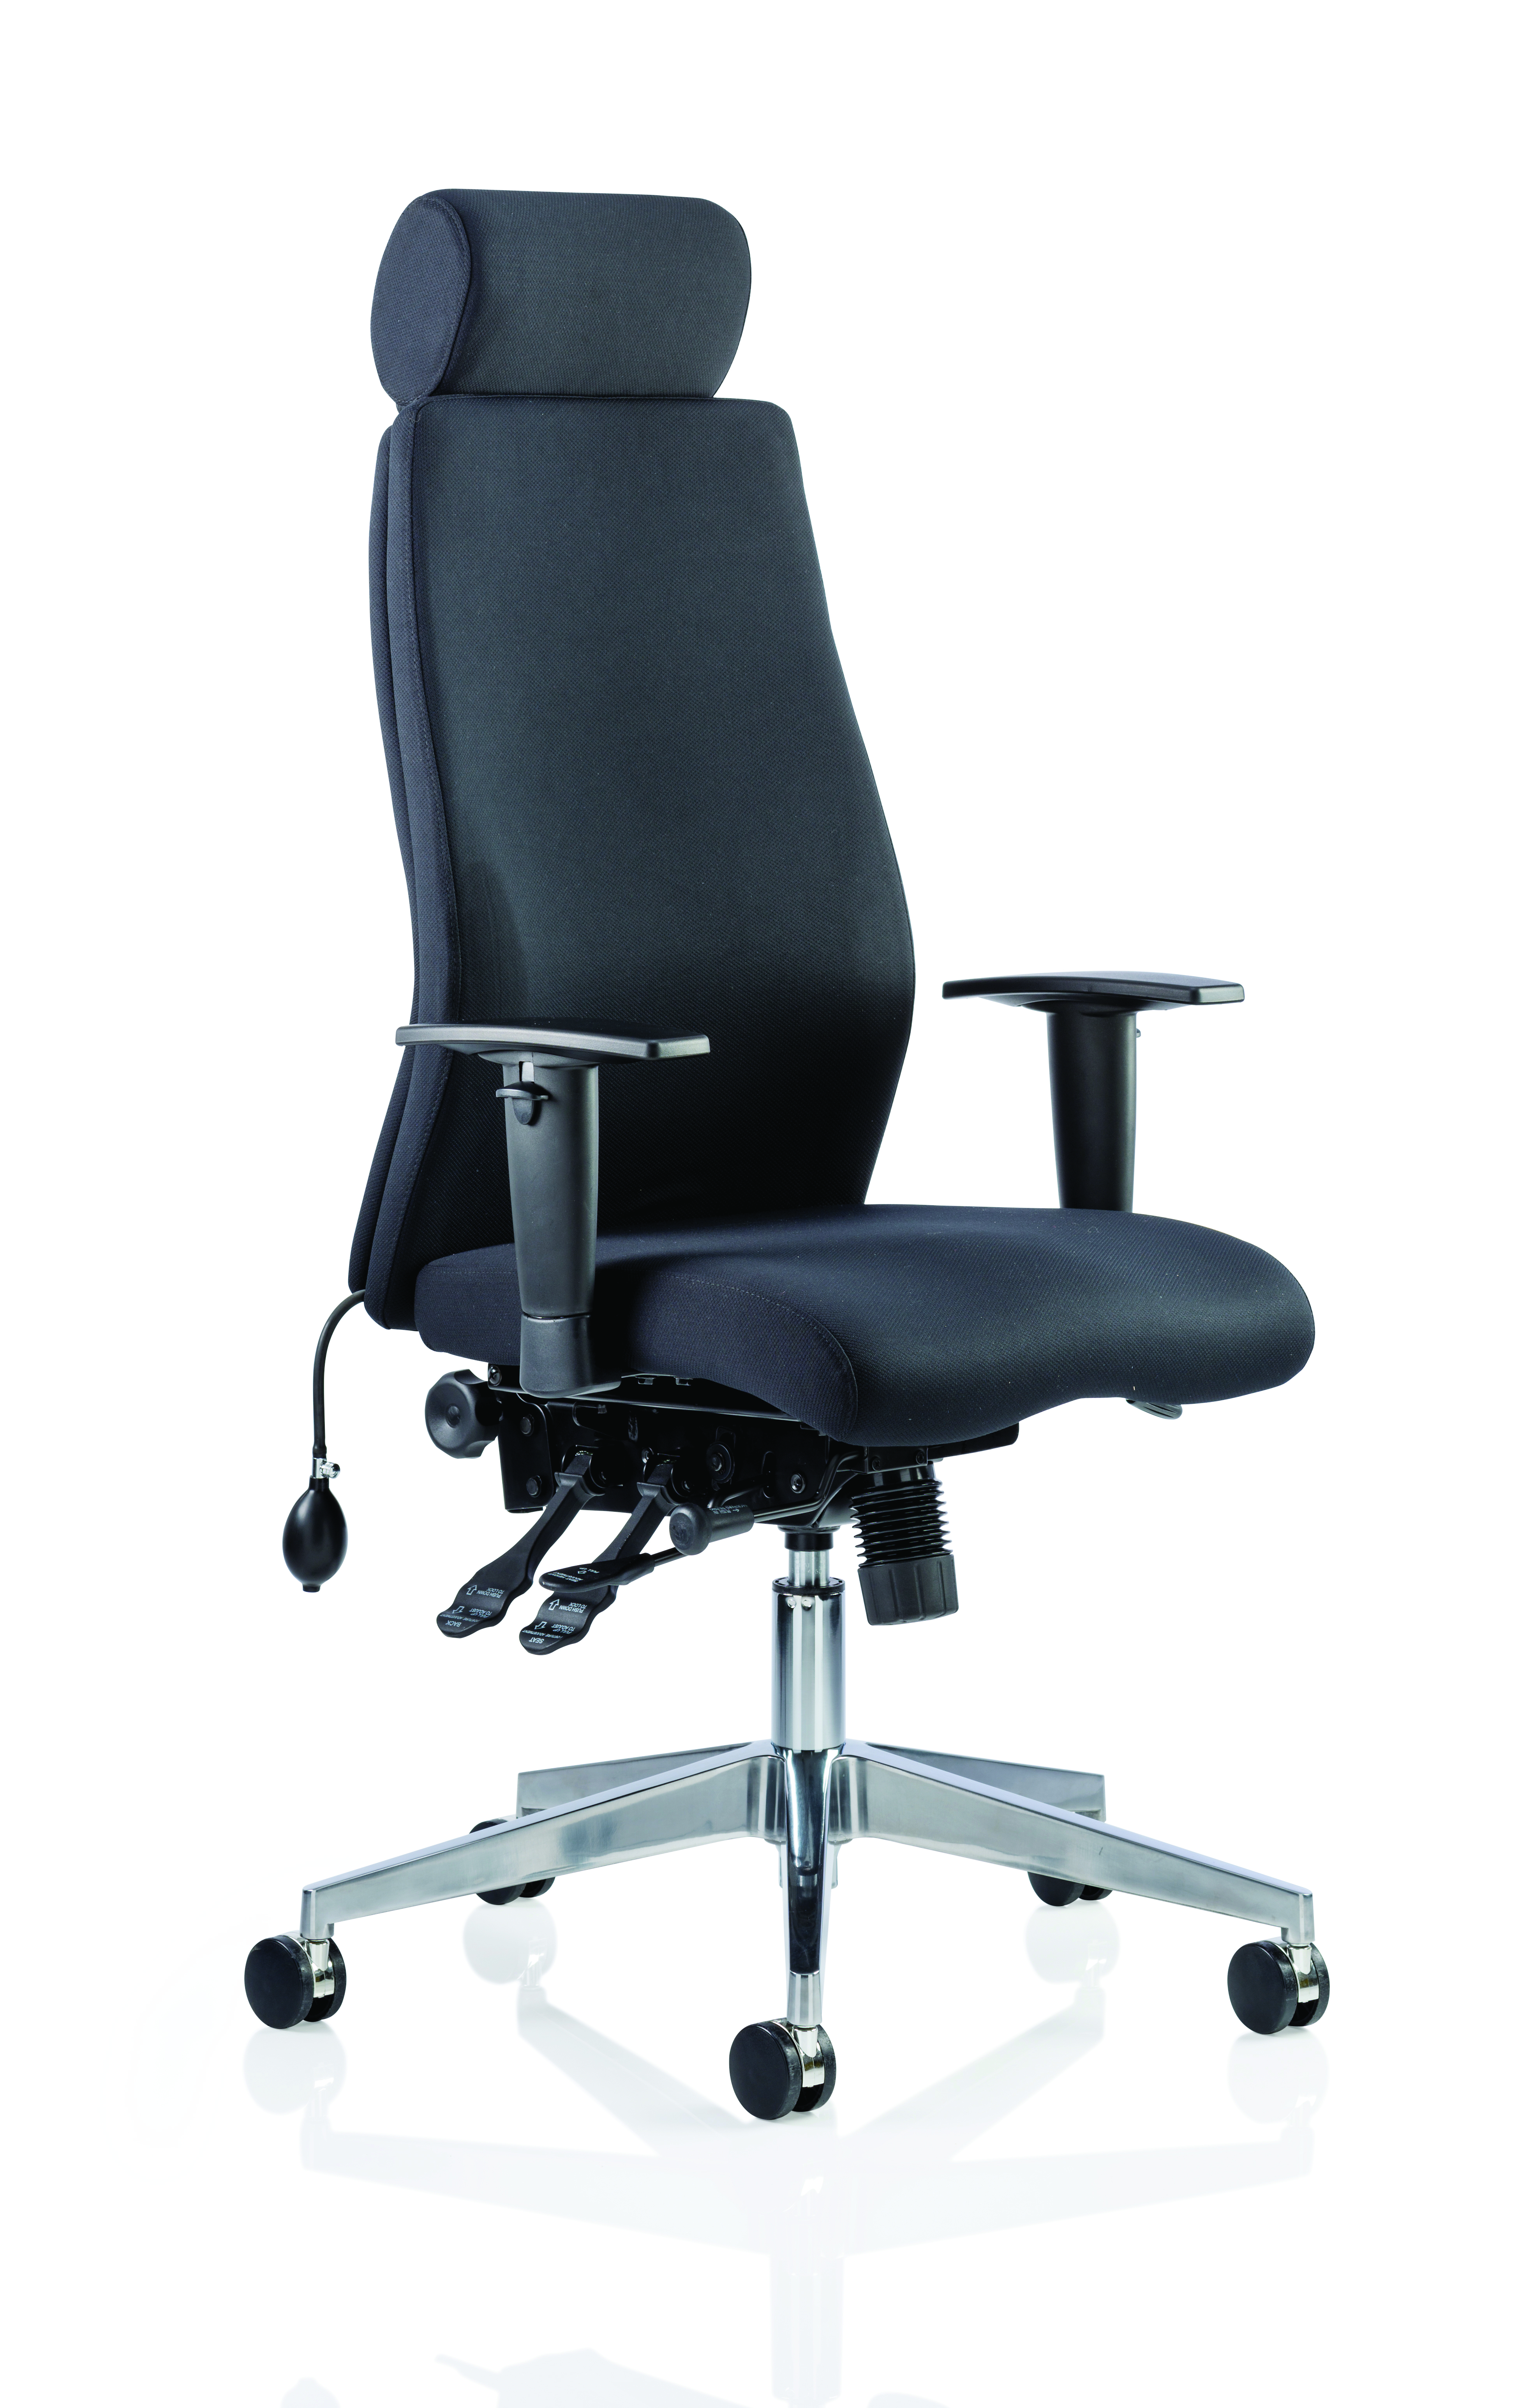 Desk Chairs Onyx Black Fabric With Headrest With Arms OP000094